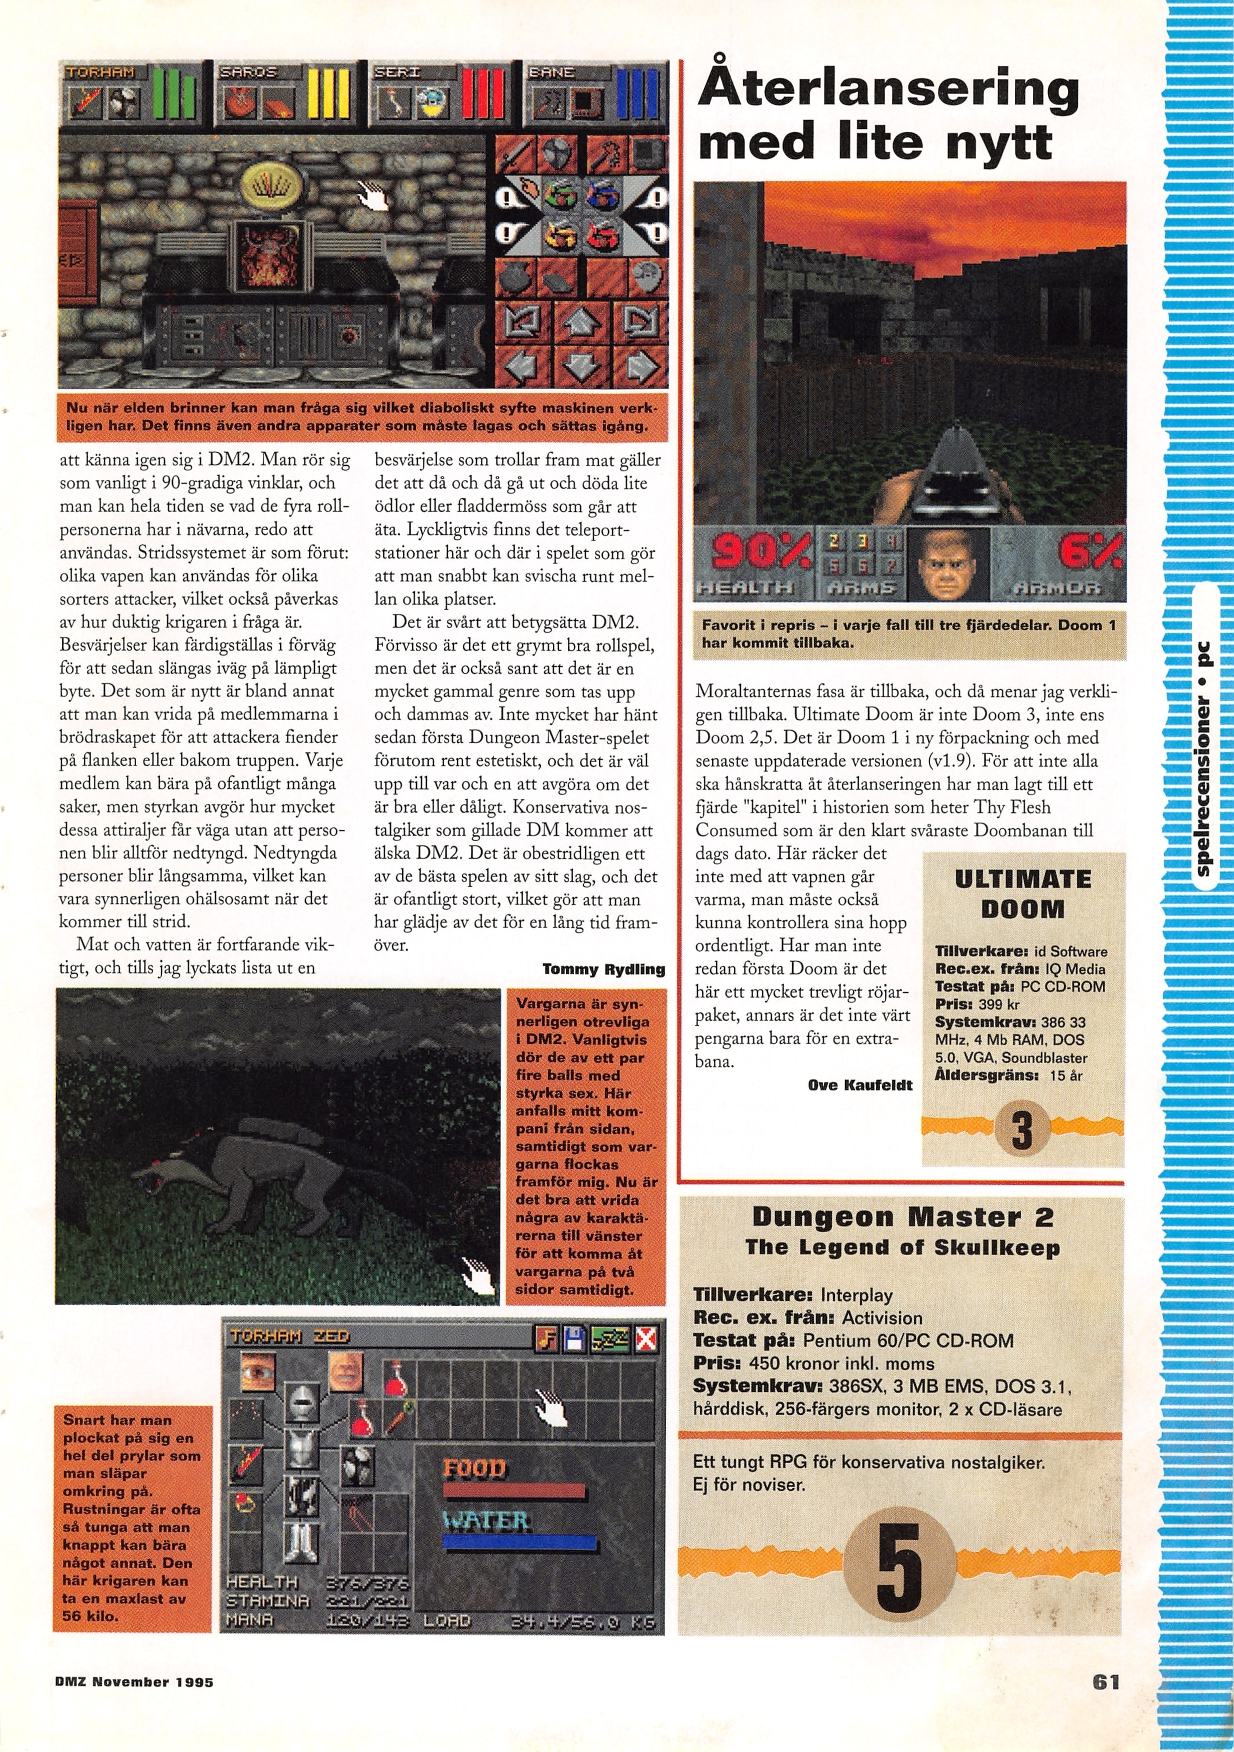 Dungeon Master II for Amiga Review published in Swedish magazine 'Datormagazin', Vol 1995 No 14 November 1995, Page 61